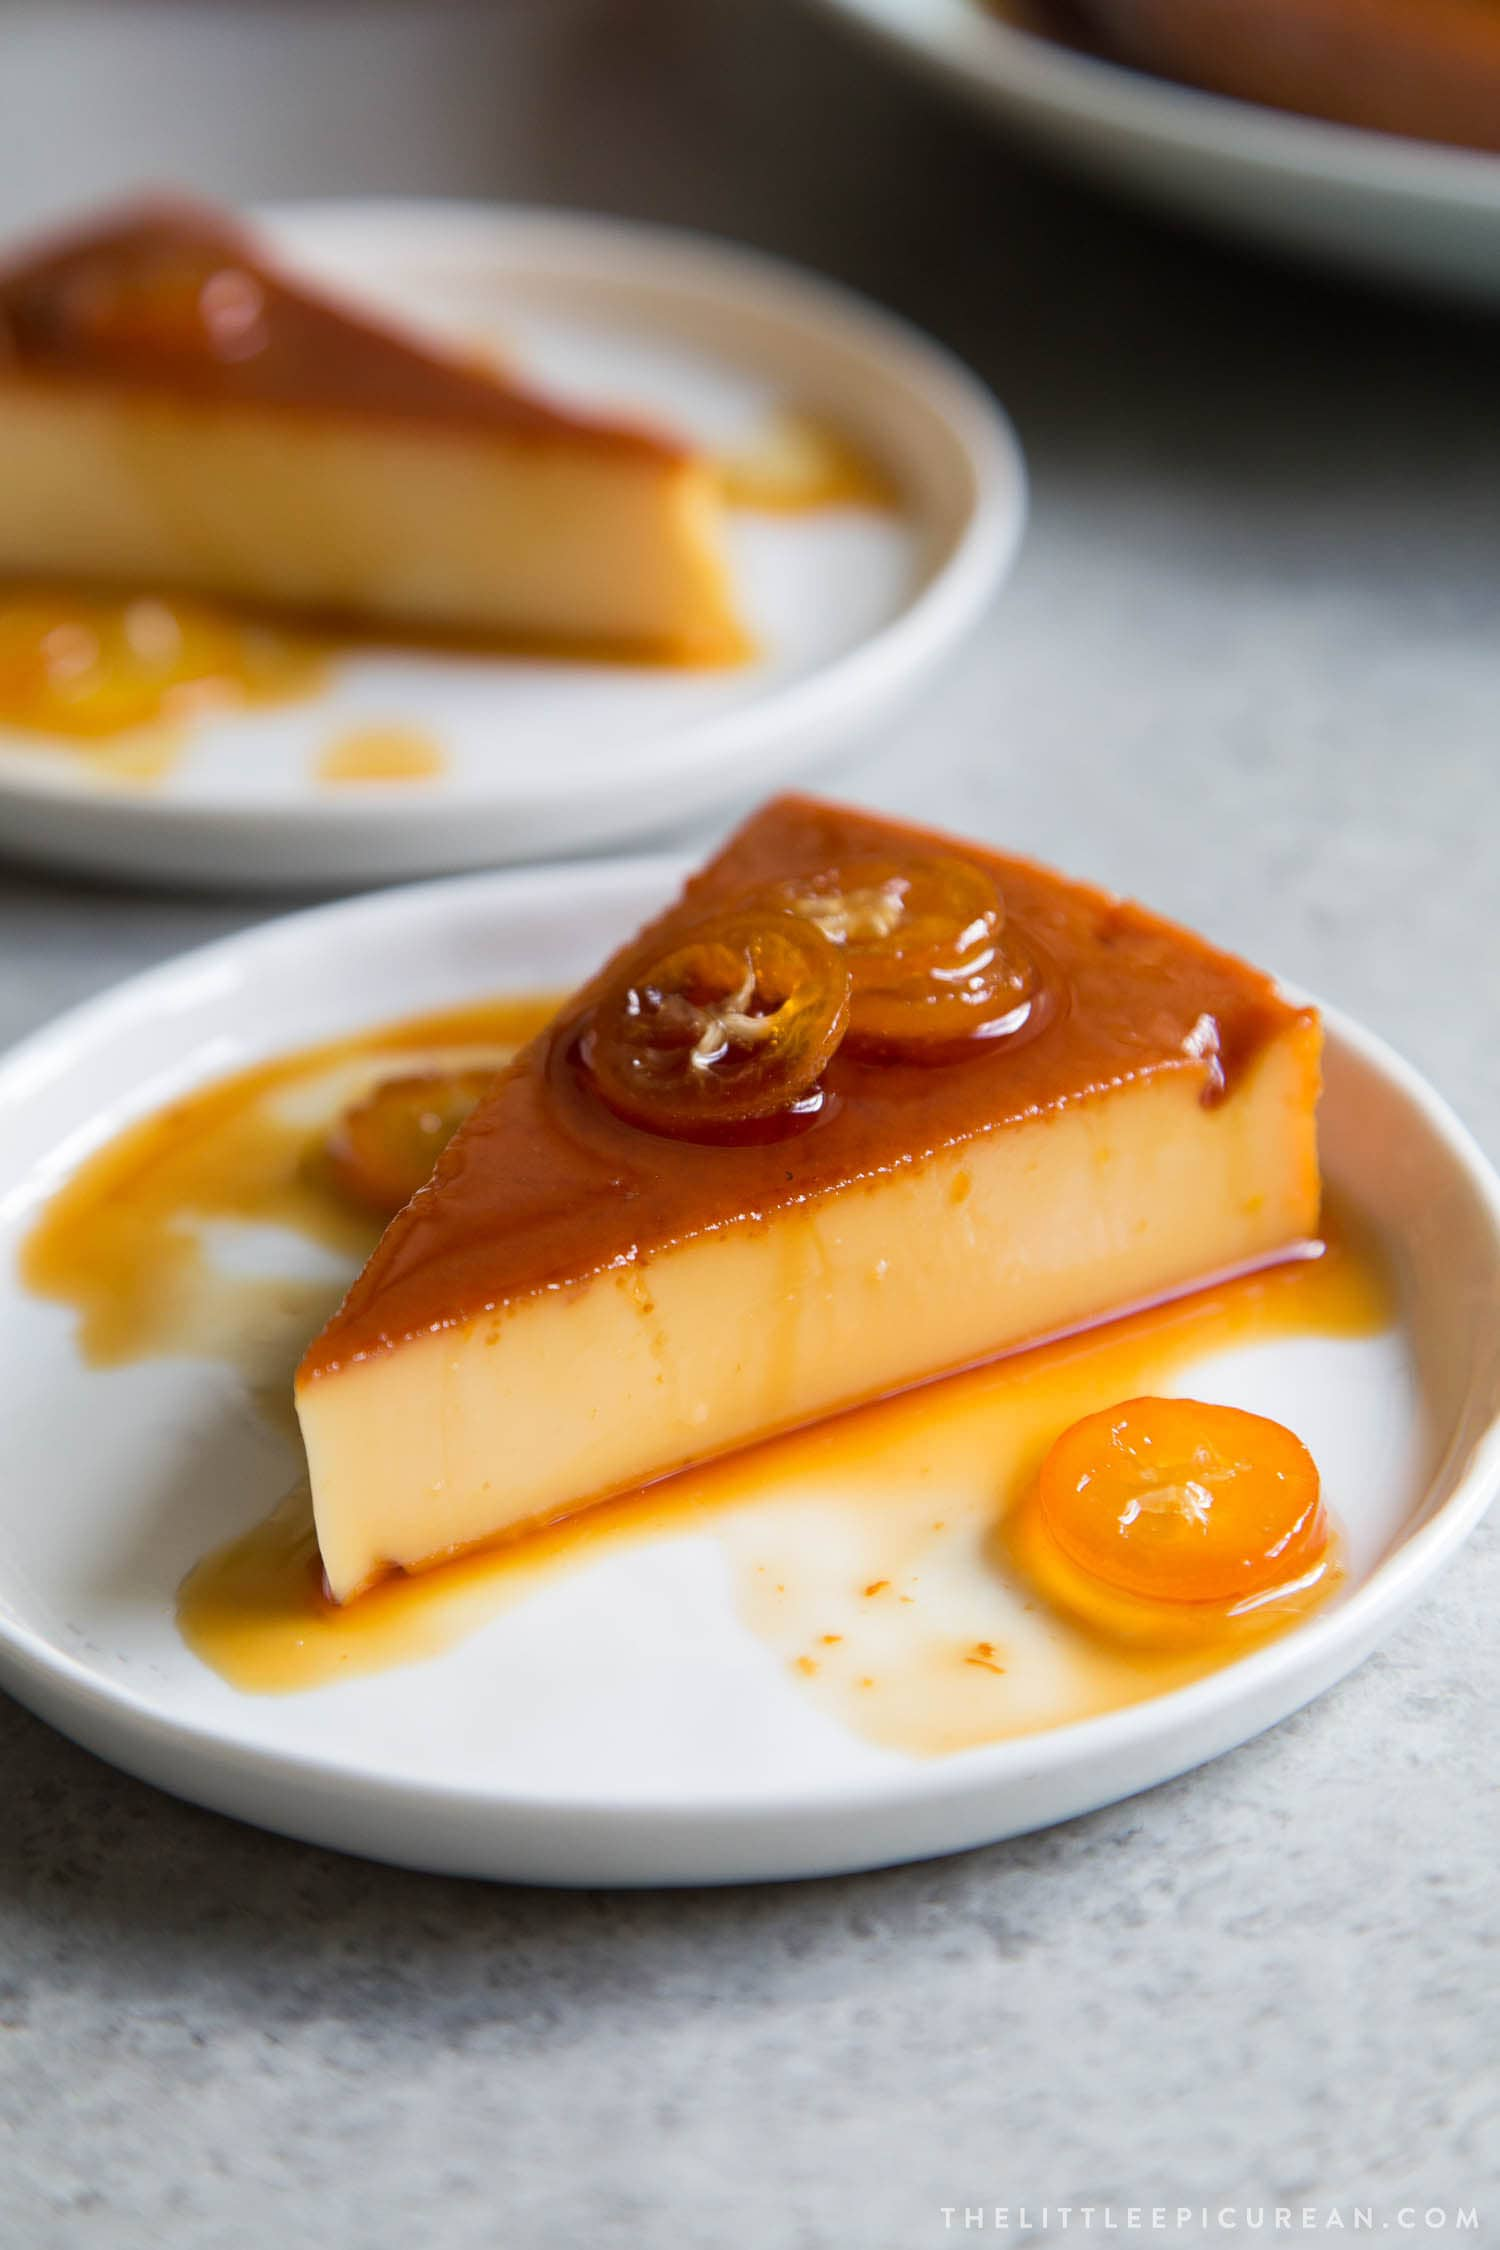 Leche Flan Filipino Milk Custard